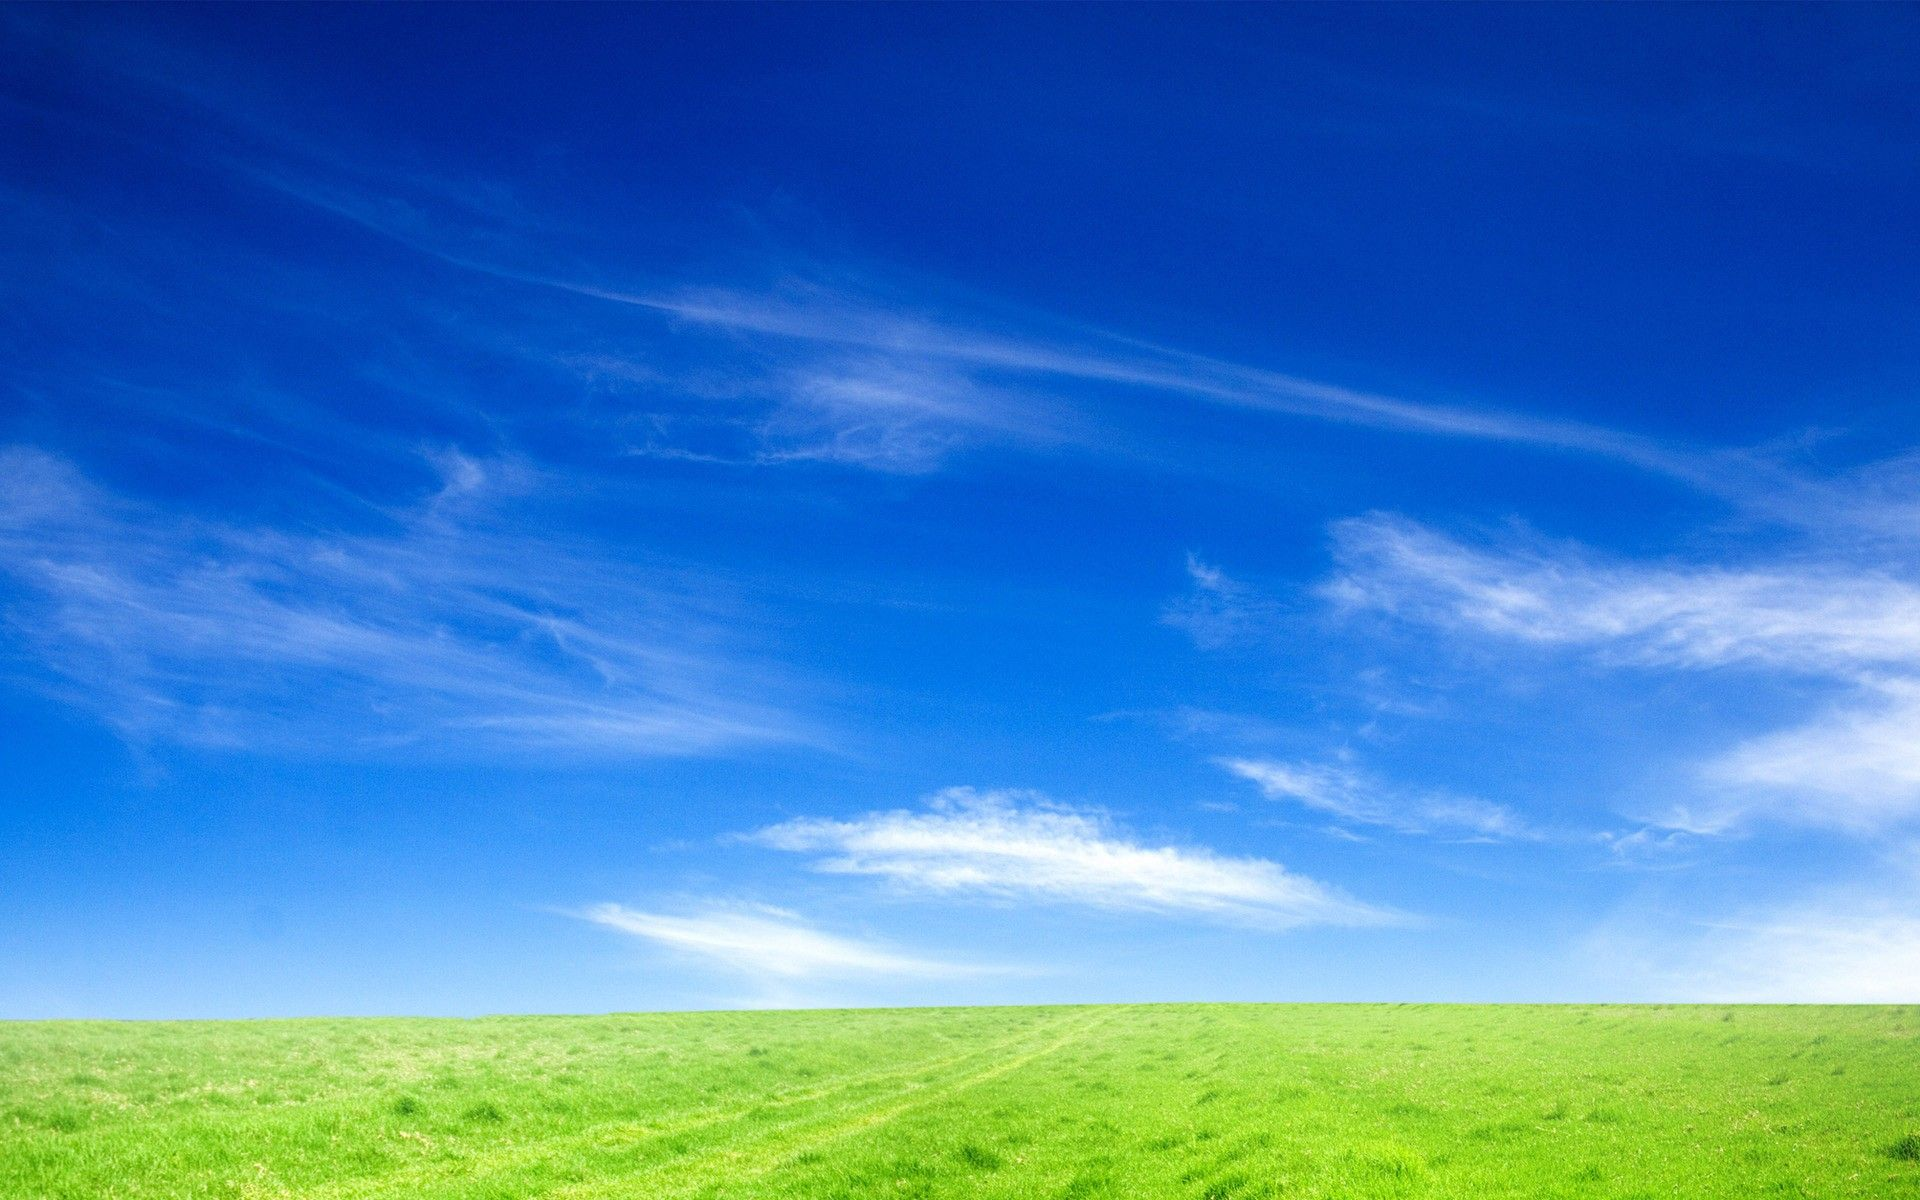 Free Download Blue Sky Background 1920x1200 Photo Blue Sky Wallpaper Landscape Wallpaper Blue Sky Background